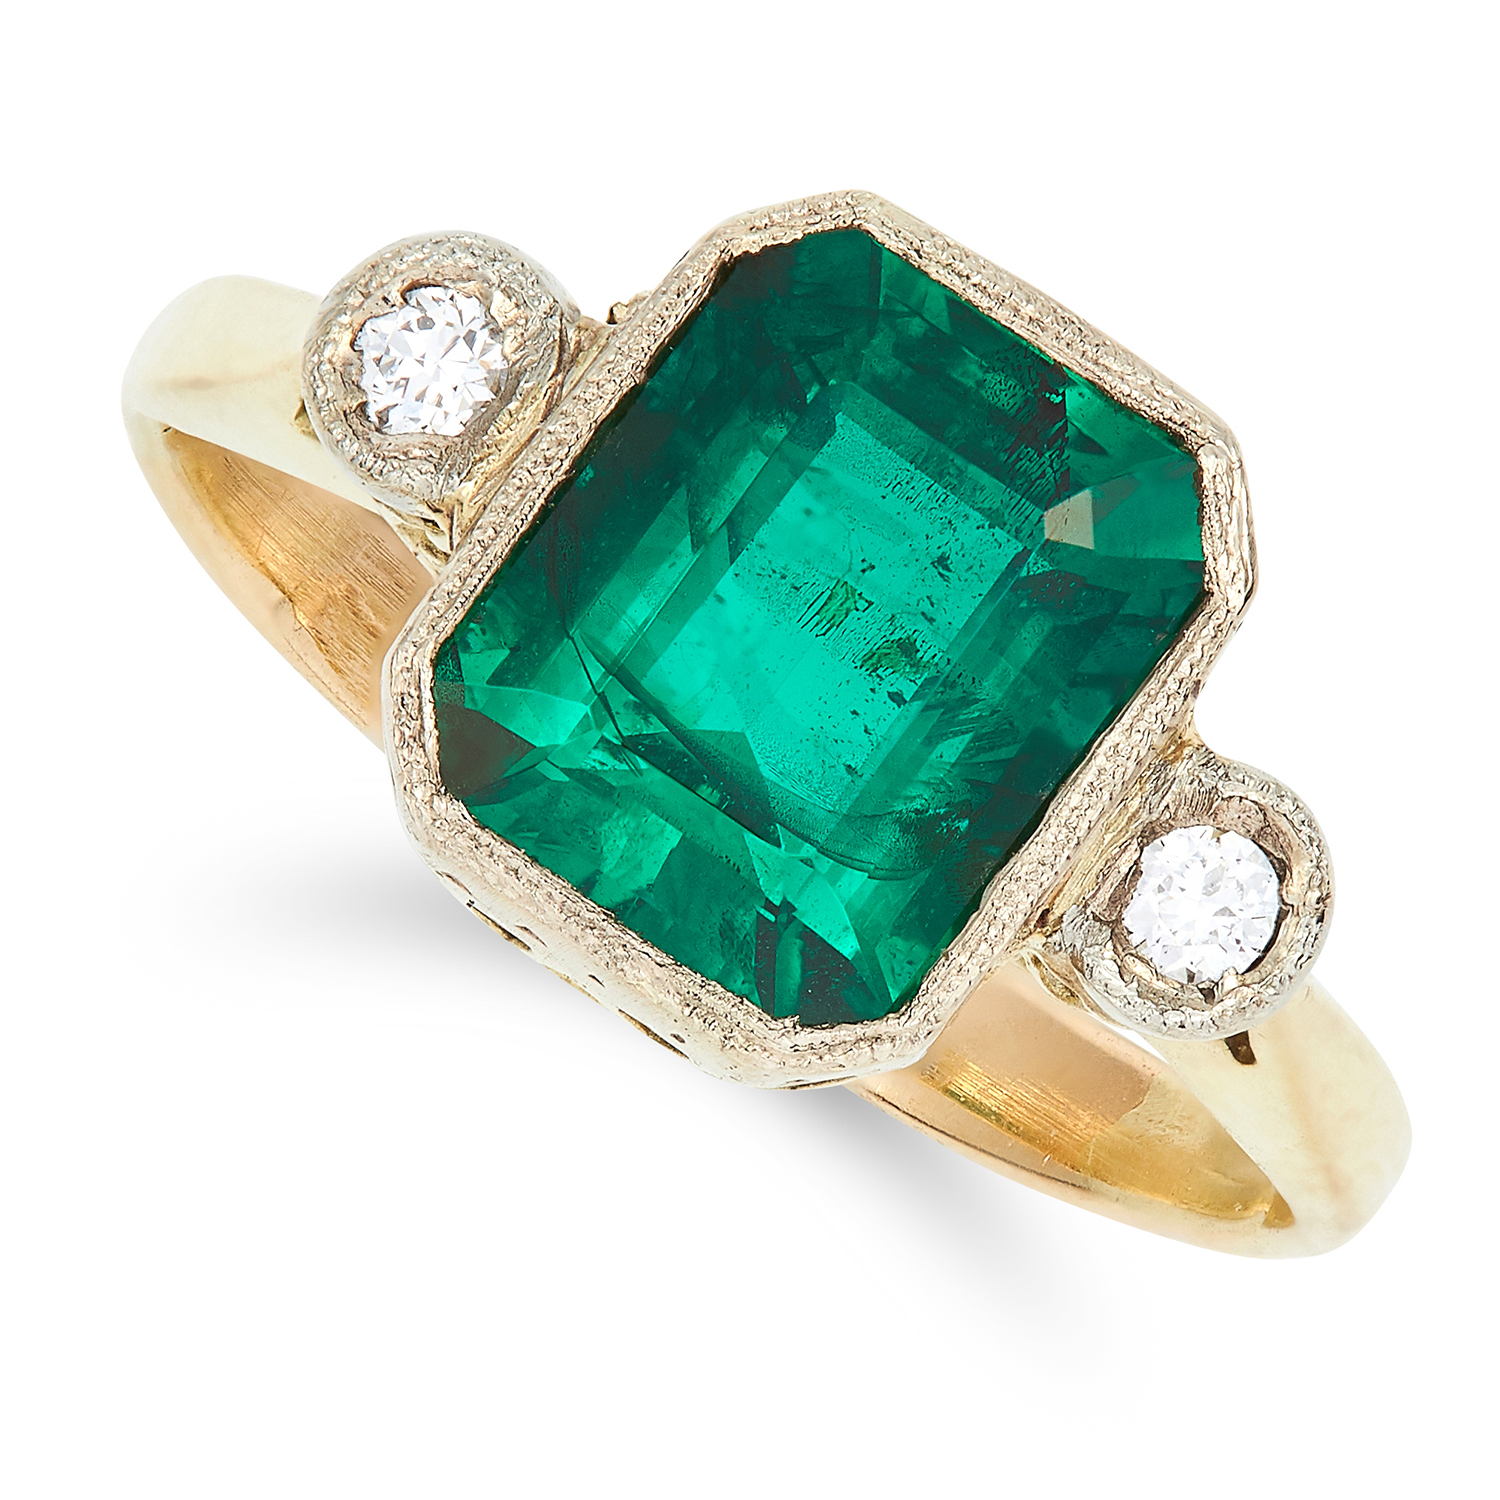 ANTIQUE SYNTHETIC EMERALD AND DIAMOND RING set with an emerald cut synthetic emerald and round cut